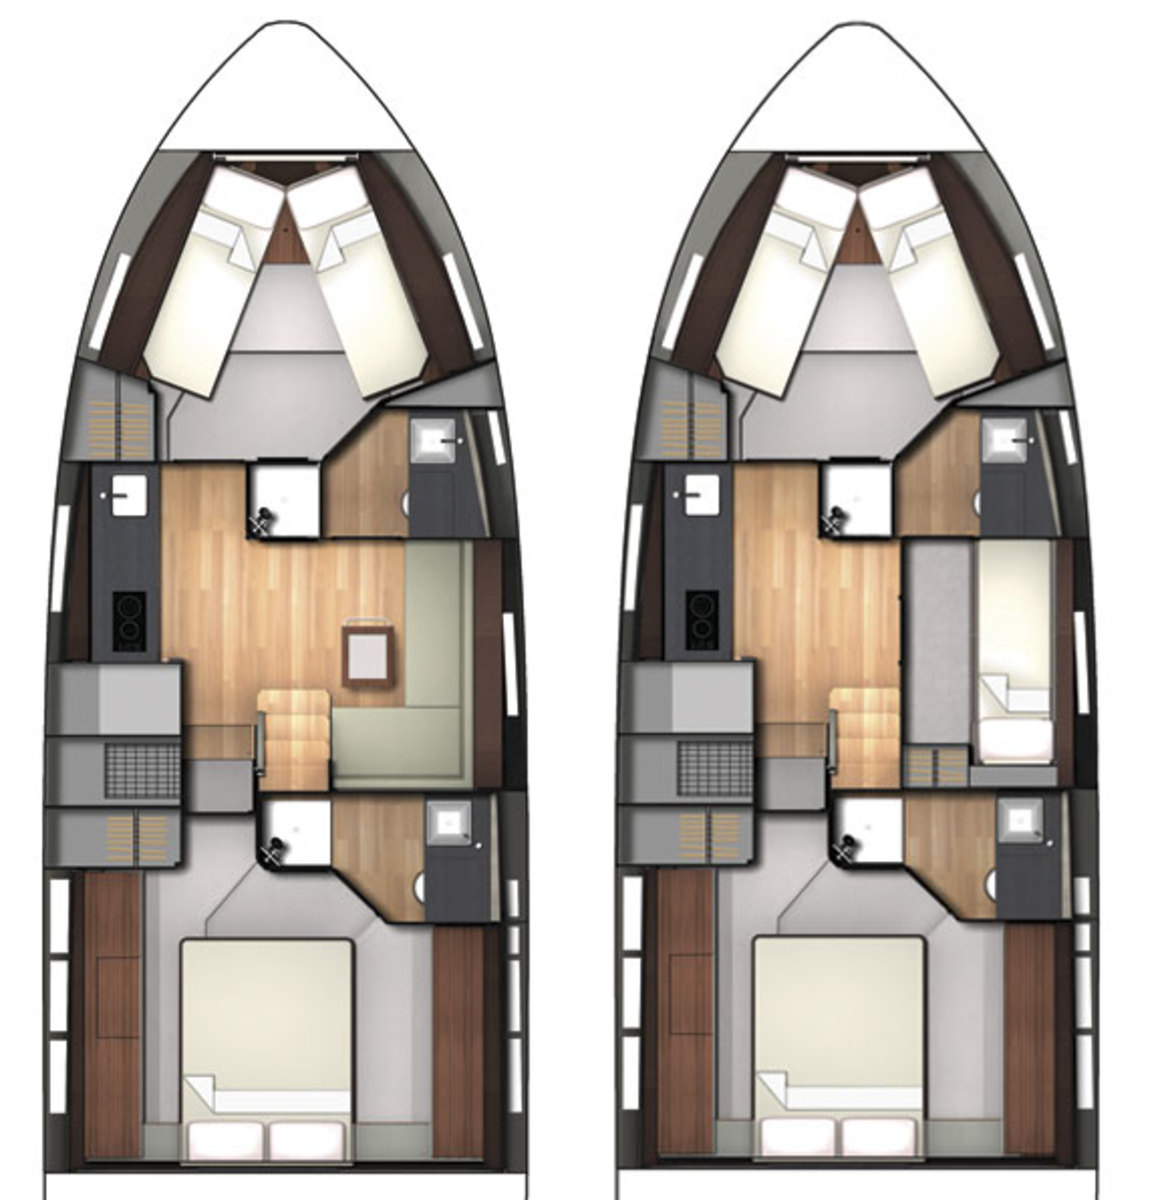 Fairline Targa 48 Open layout options